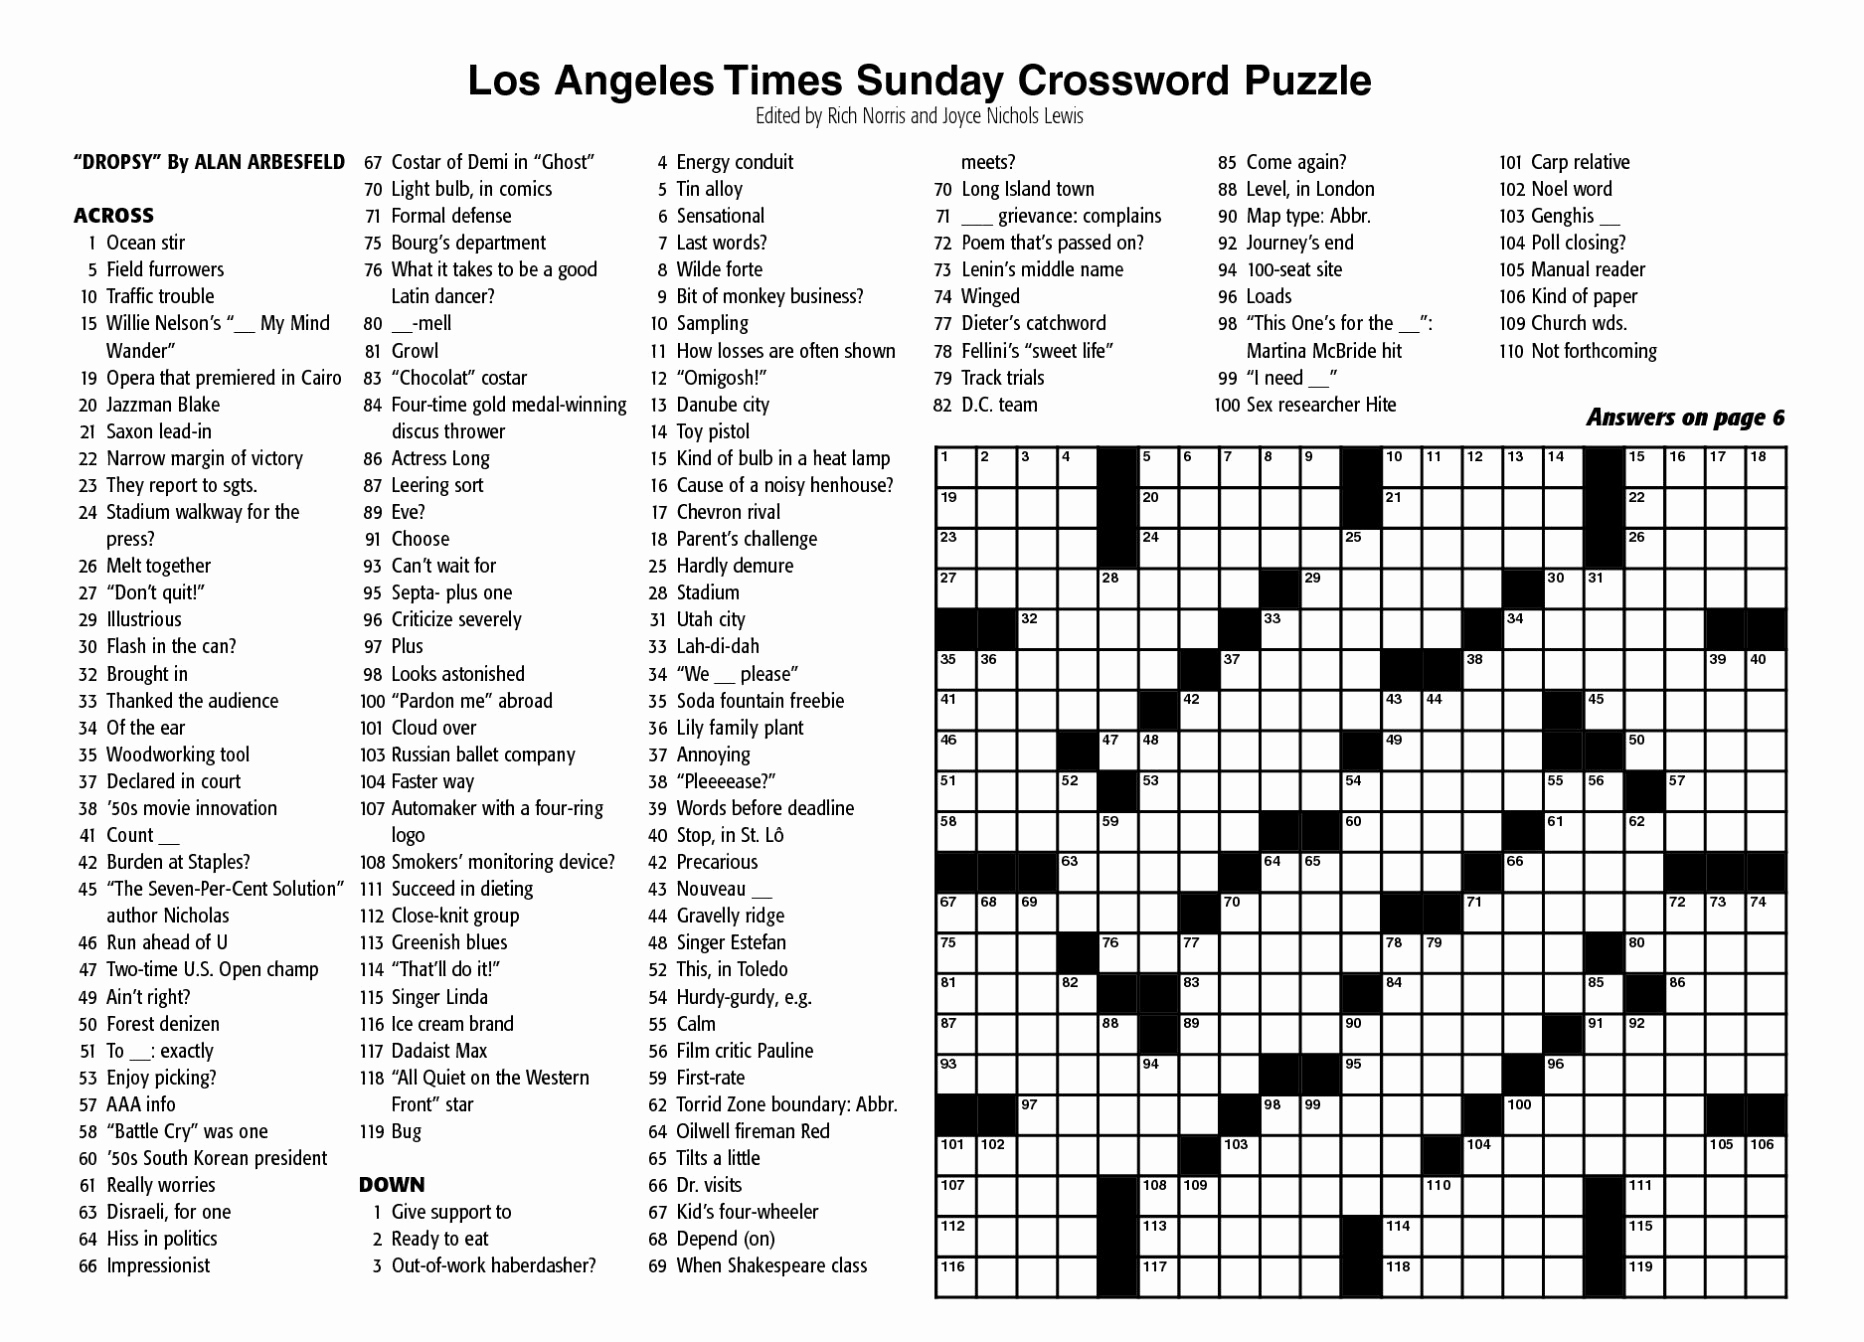 Sunday Crossword Puzzle Printable Ny Times Syndicated Answers - Free - Printable La Times Crossword 2019